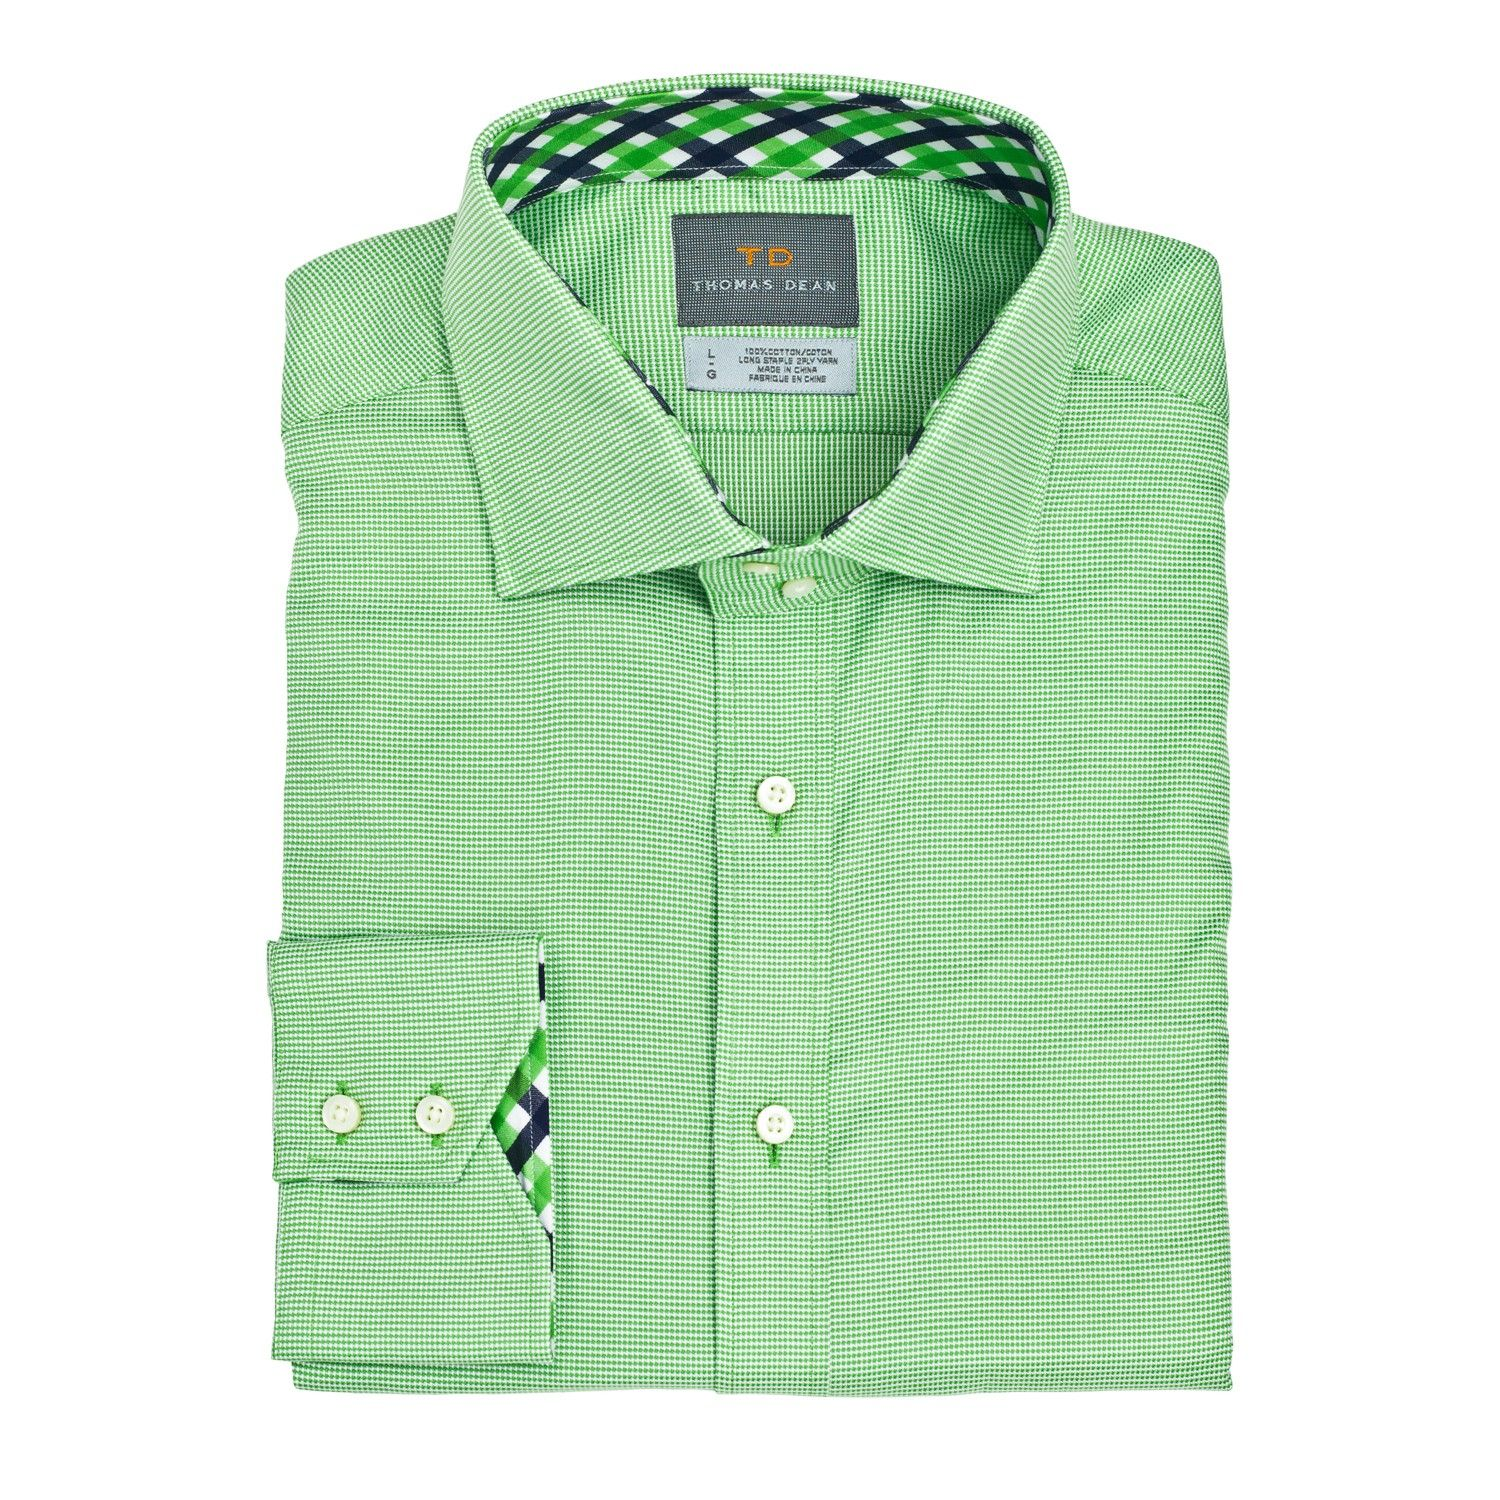 Thomas Dean Cotton Solid Long-Sleeve Button Down Sport Shirt in ...